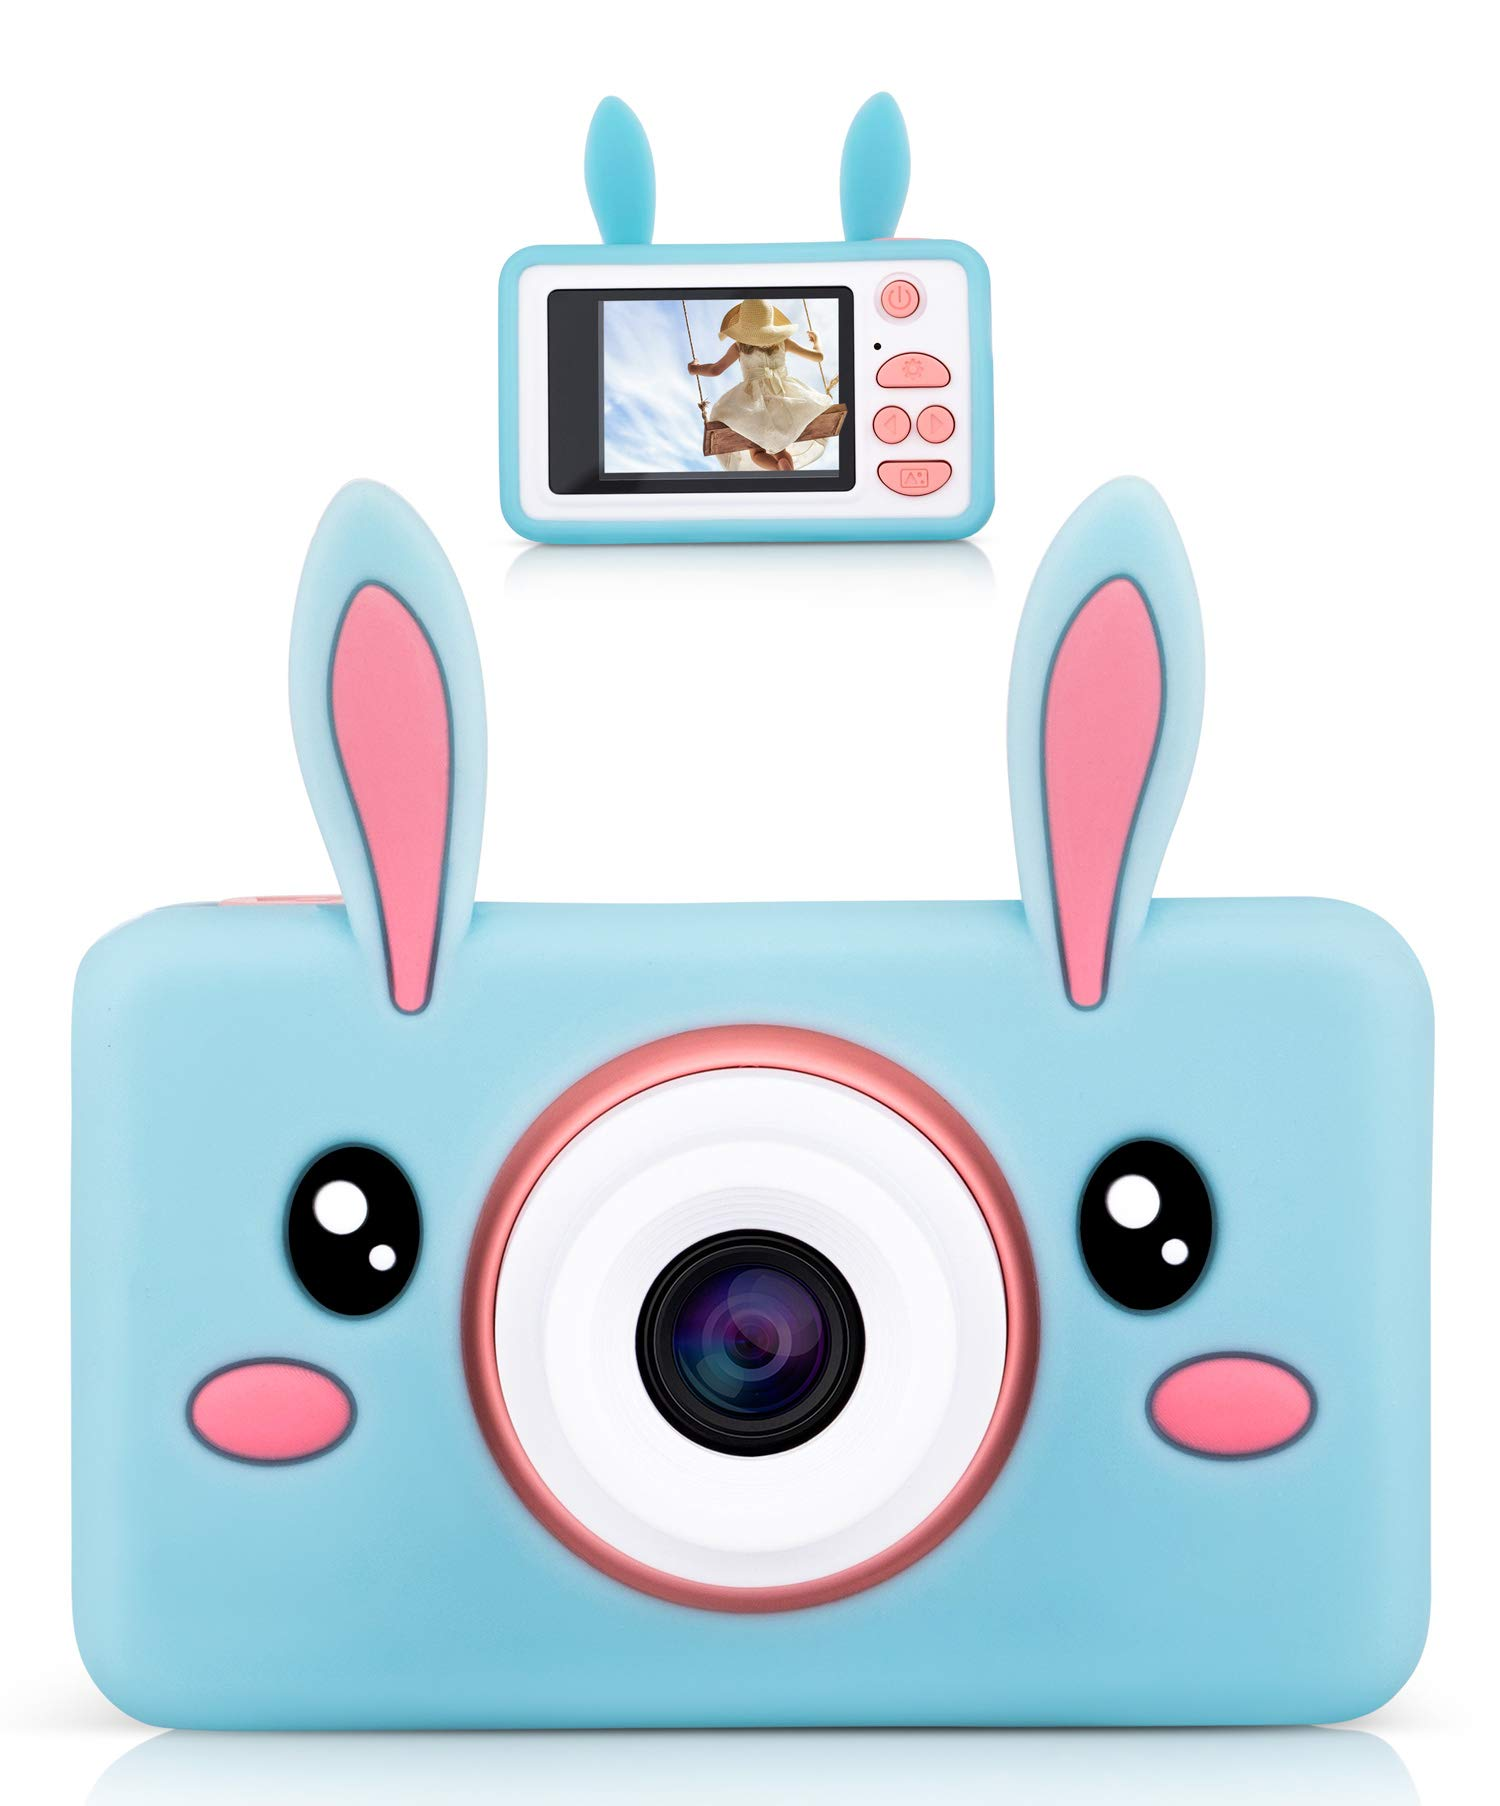 Lilexo Kids Camera - Children Shockproof Mini Digital Video Camcorder for Girls Gifts, Anti Slip Grip with Animal Silicone Cover for Extra Protection - 16GB Memory Card Included (Blue Rabbit) by Lilexo (Image #1)